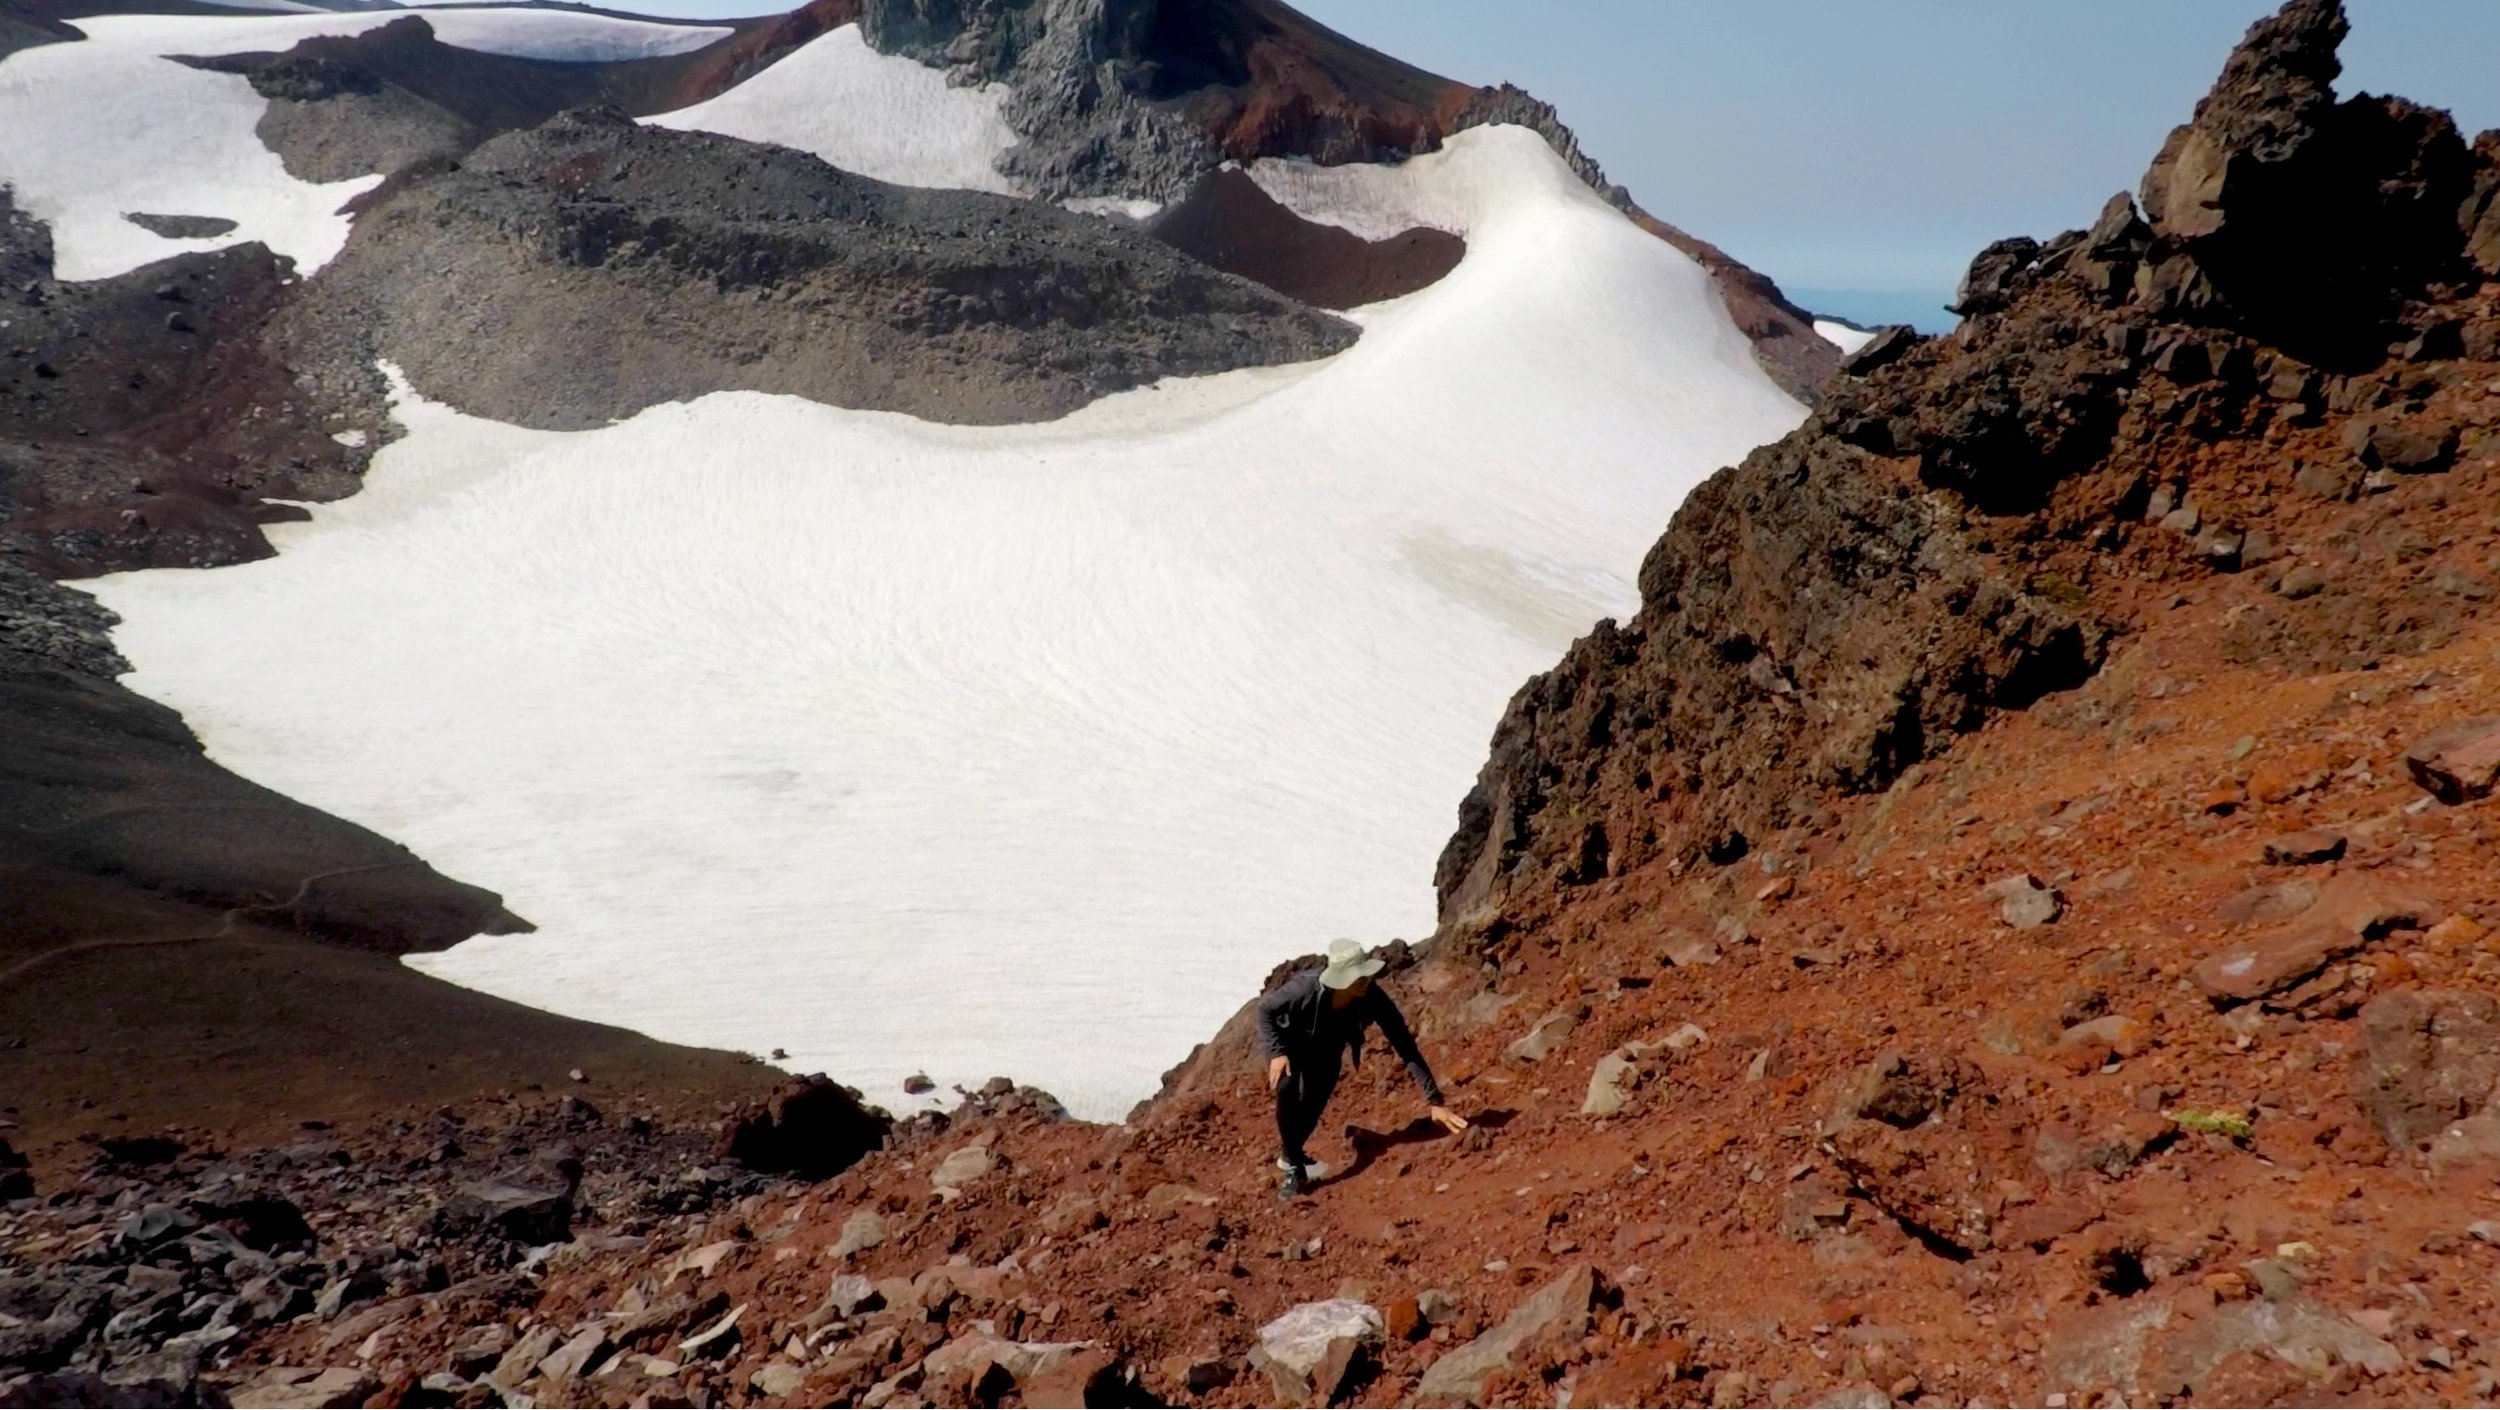 Climbing the lower slopes of Echo Rock, Flett glacier in the background